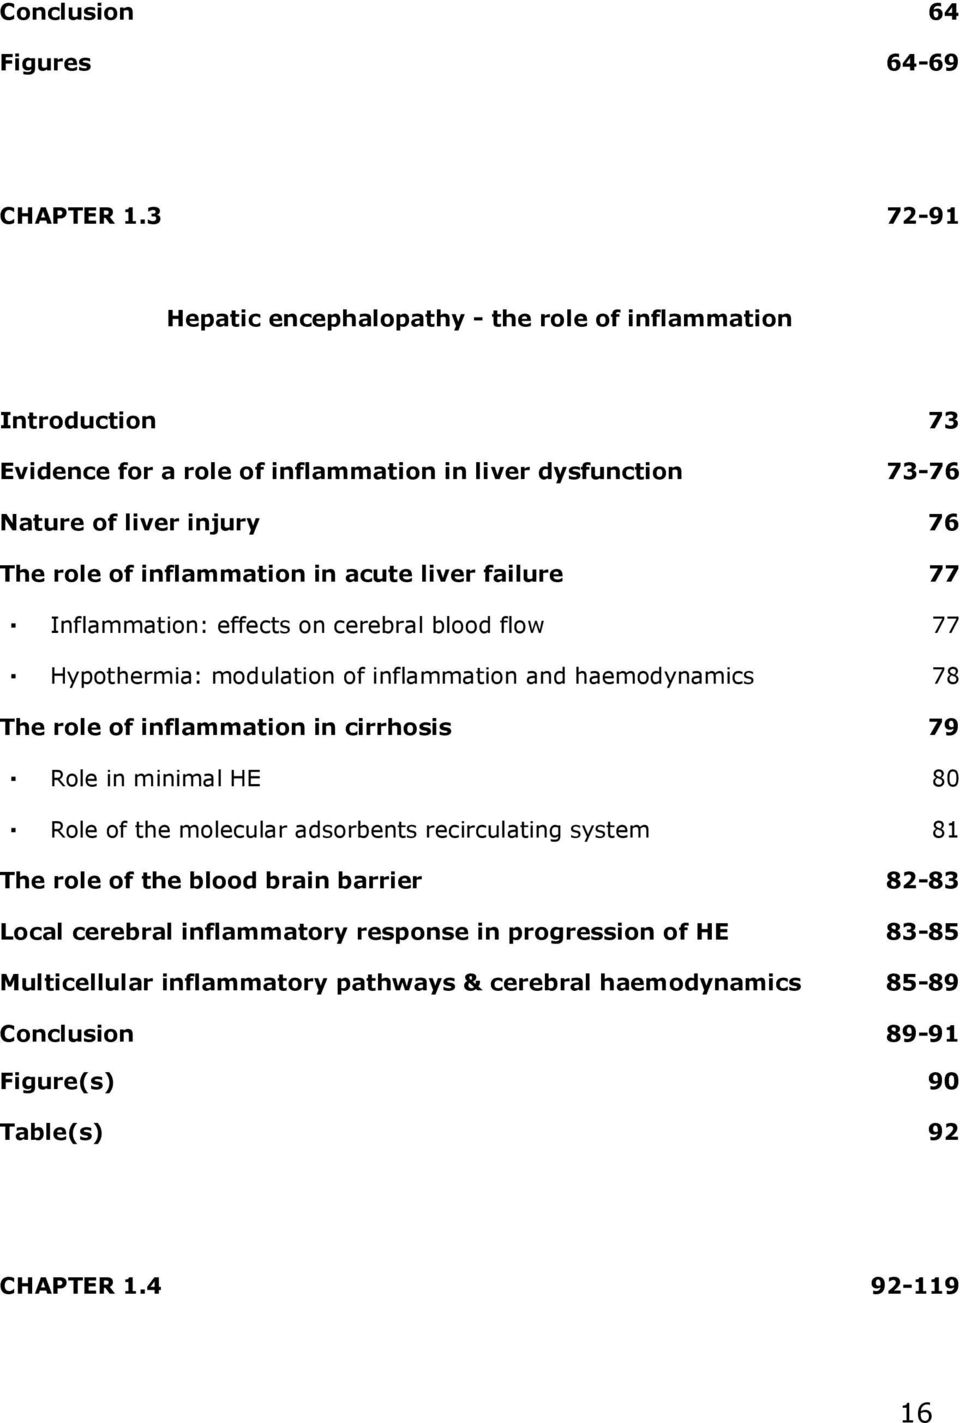 inflammation in acute liver failure 77 Inflammation: effects on cerebral blood flow 77 Hypothermia: modulation of inflammation and haemodynamics 78 The role of inflammation in